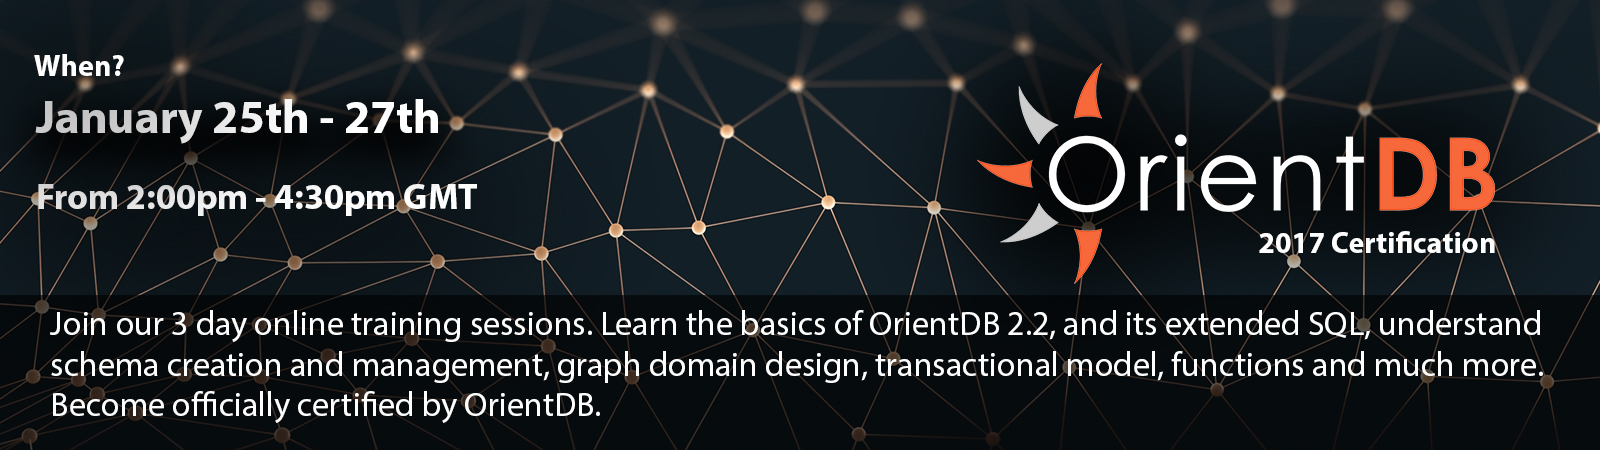 OrientDB 2017 certification